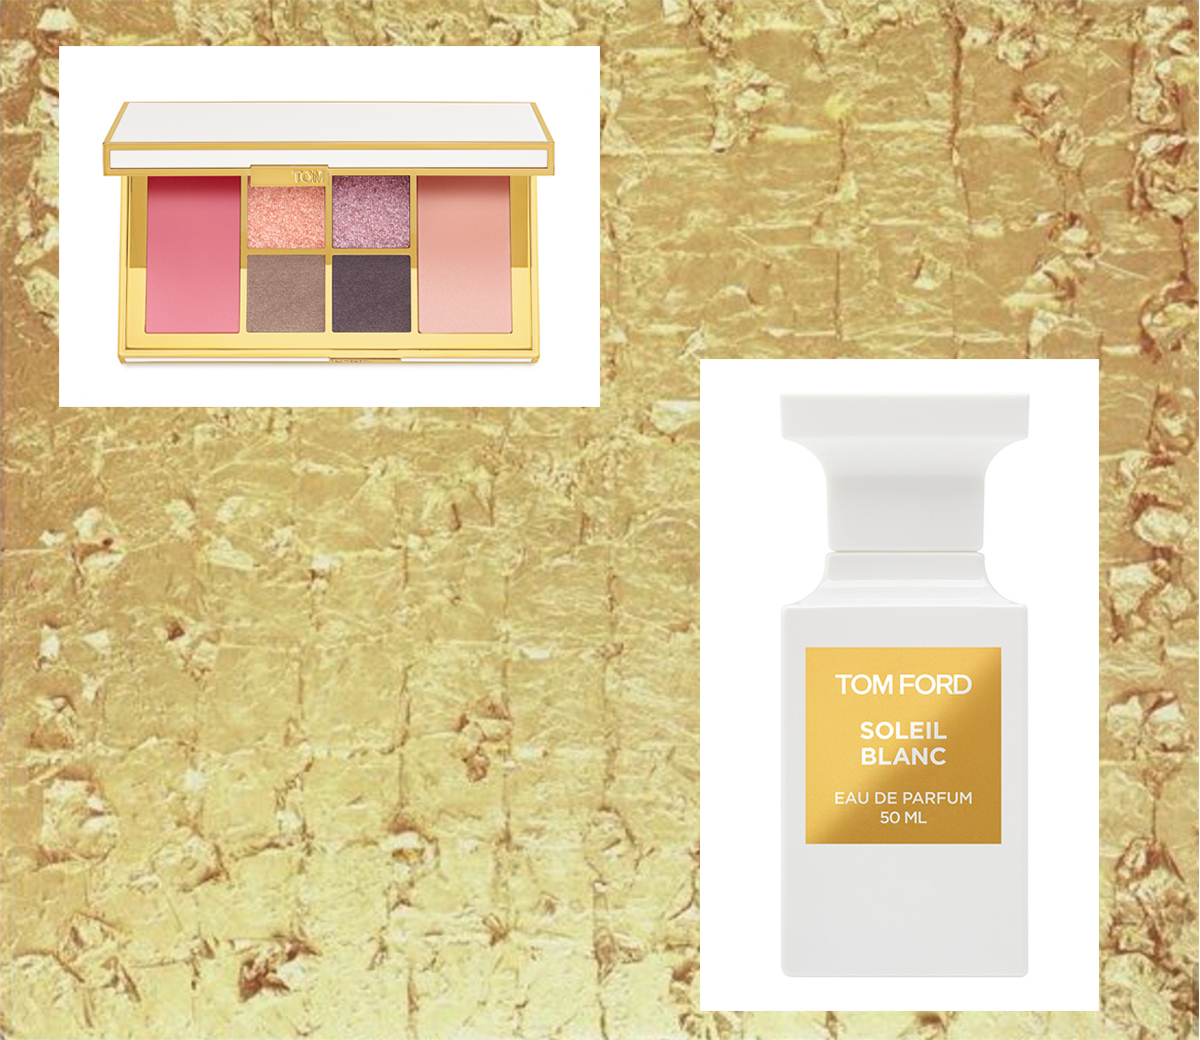 therandomnoise.com_advent_tom-ford beauty_Private Blend Duft Soleil